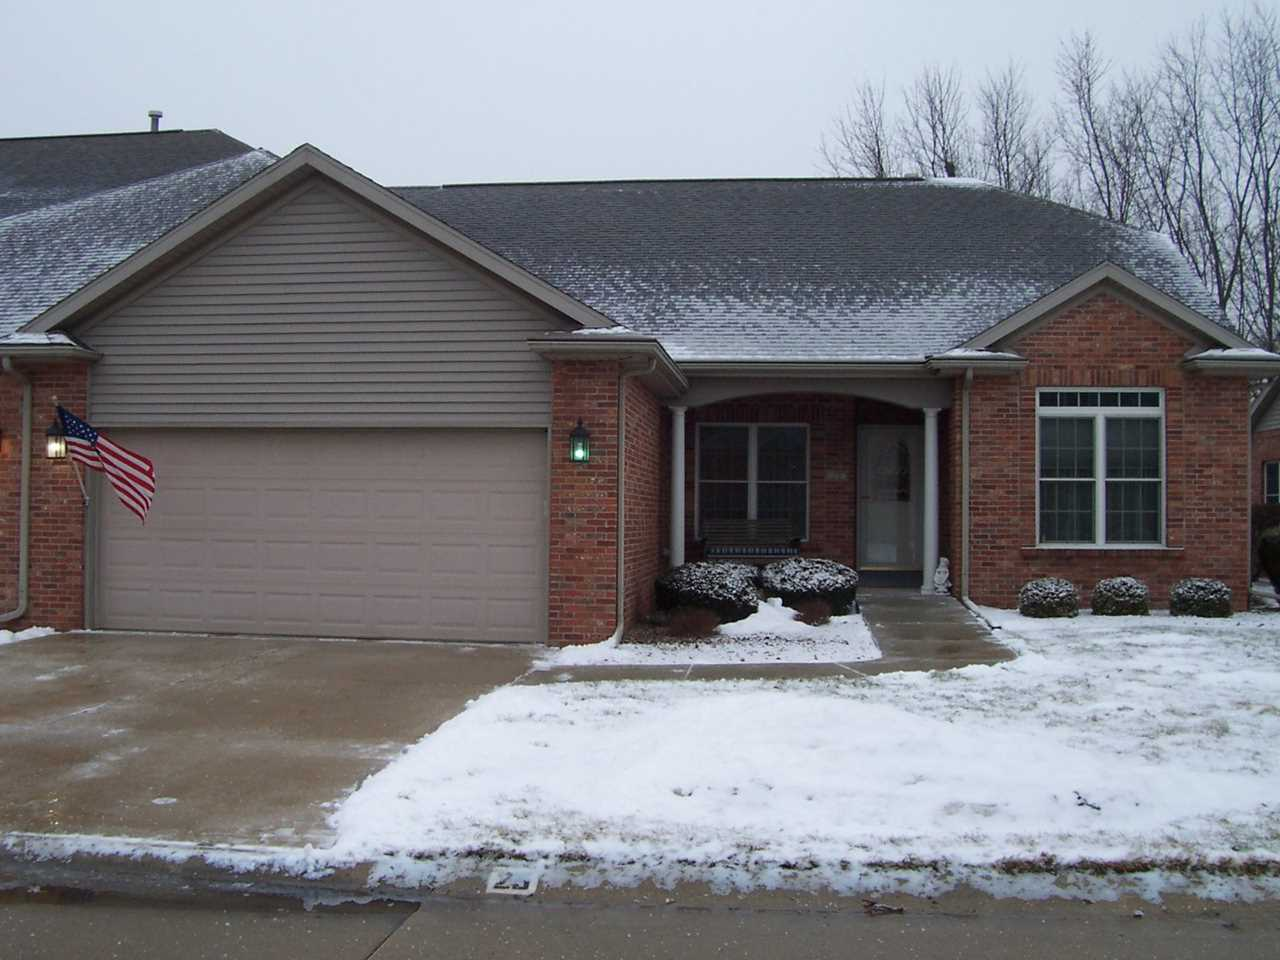 25 Laurel Wood Dr Bloomington, IL 61704 | MLS 10269088 Photo 1